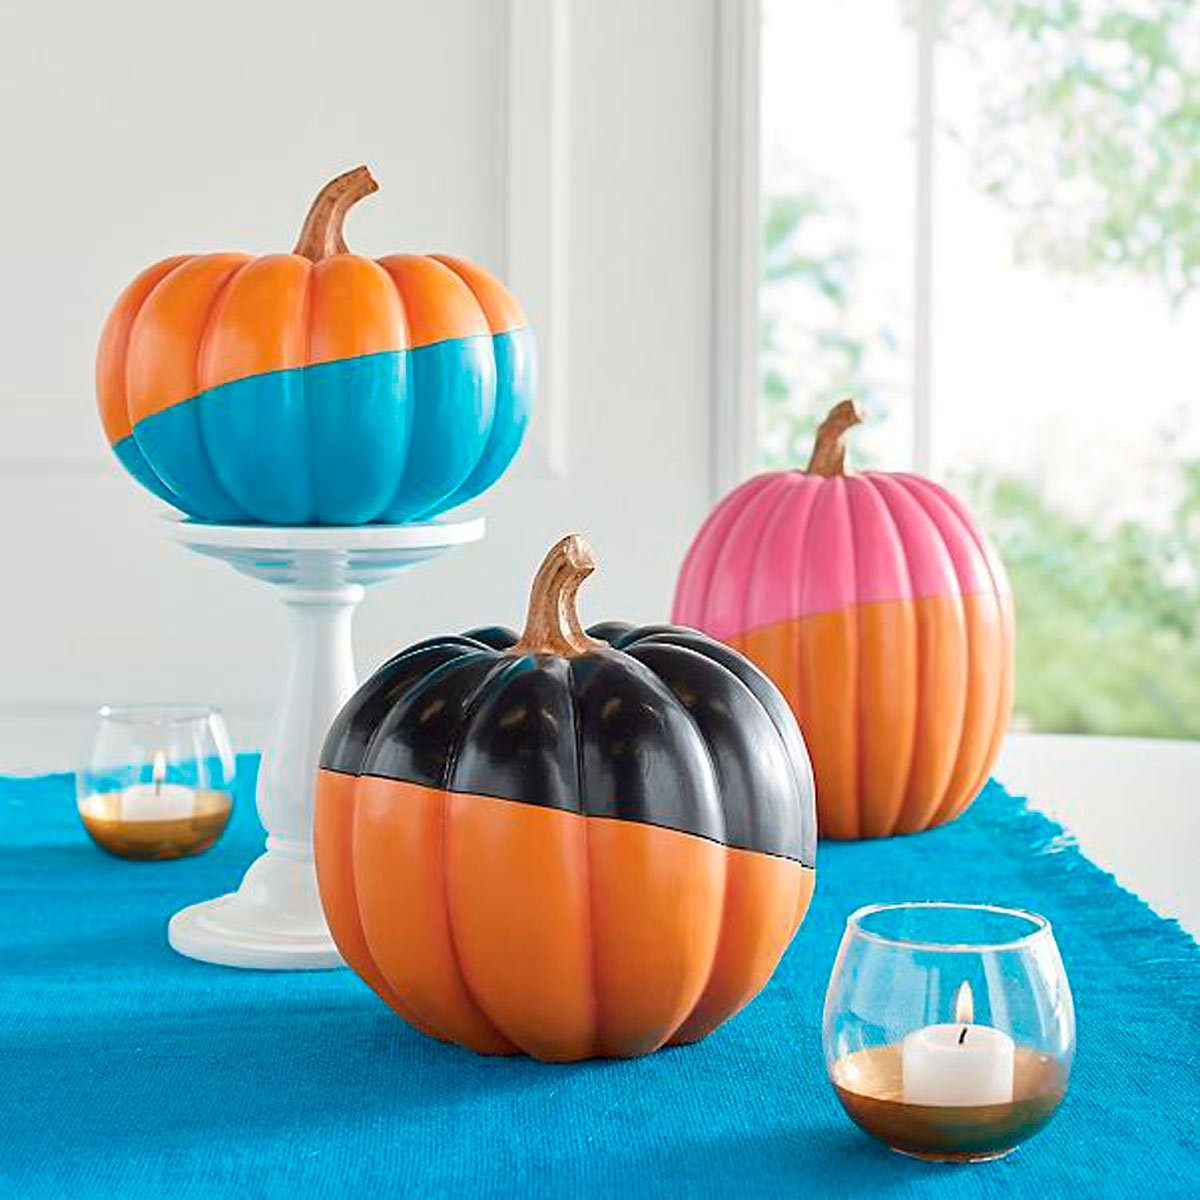 pumpkins dipped in paint